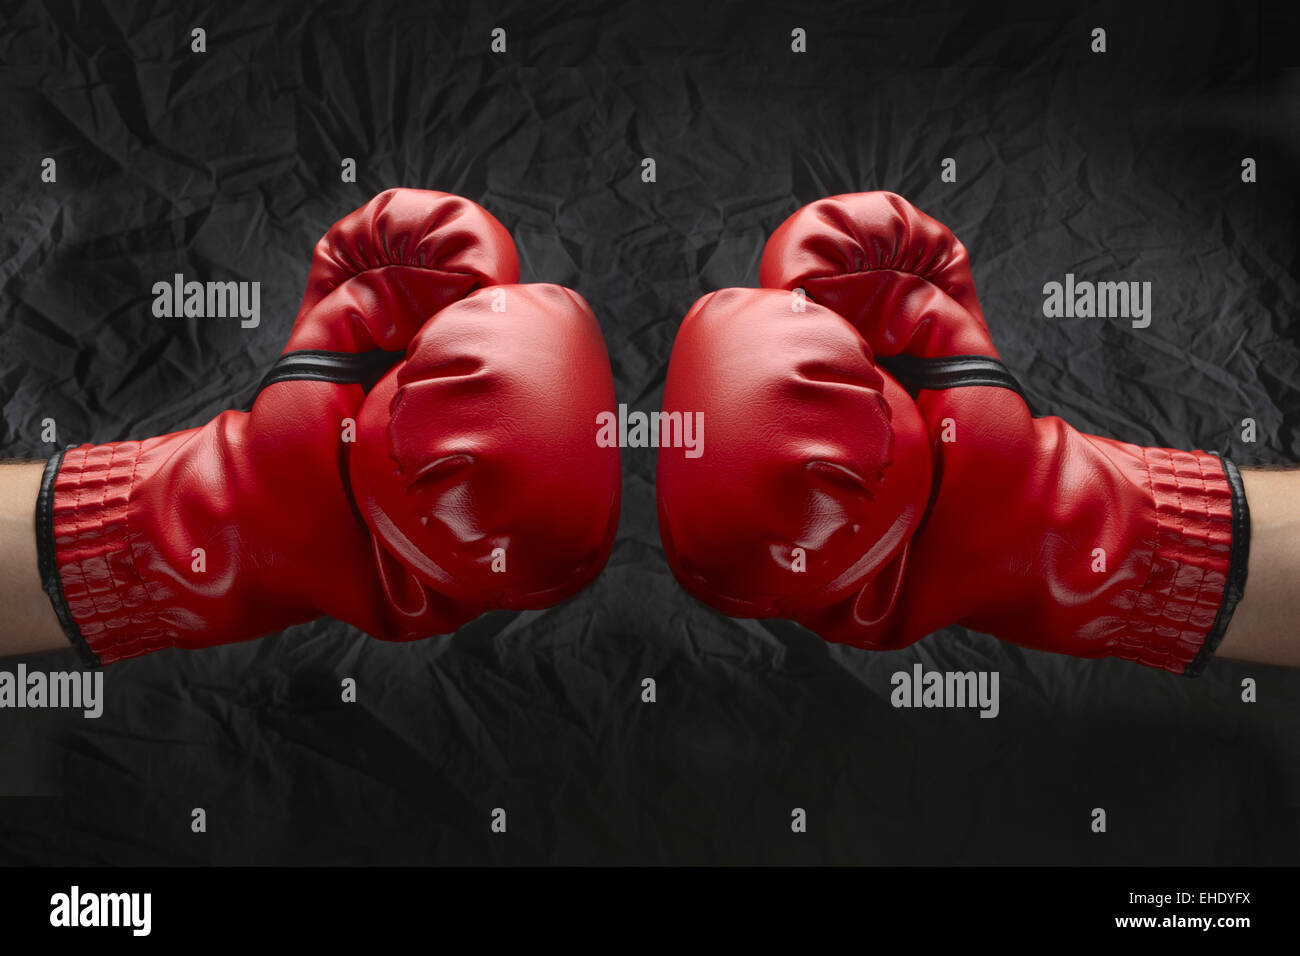 Let's get ready to rumble! Stock Photo